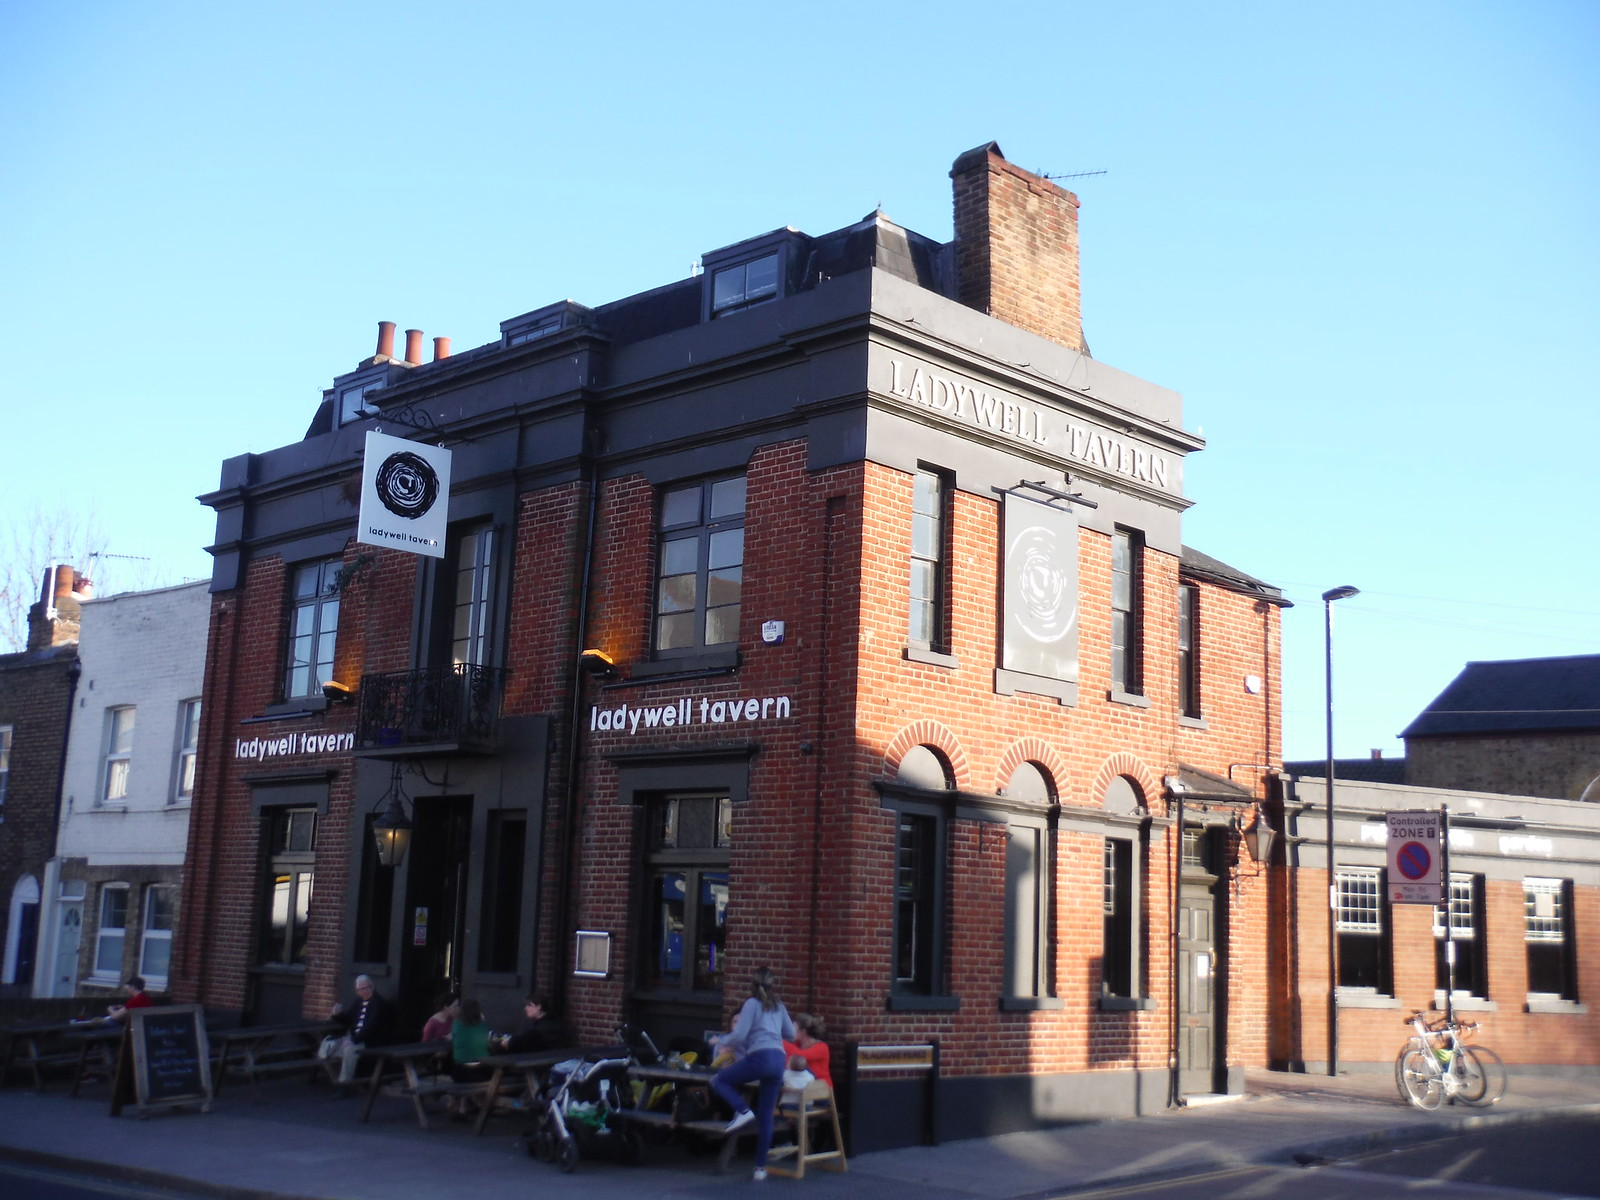 The Ladywell Tavern, Ladywell SWC Short Walk 36 - Waterlink Way (Lower Sydenham to Greenwich)